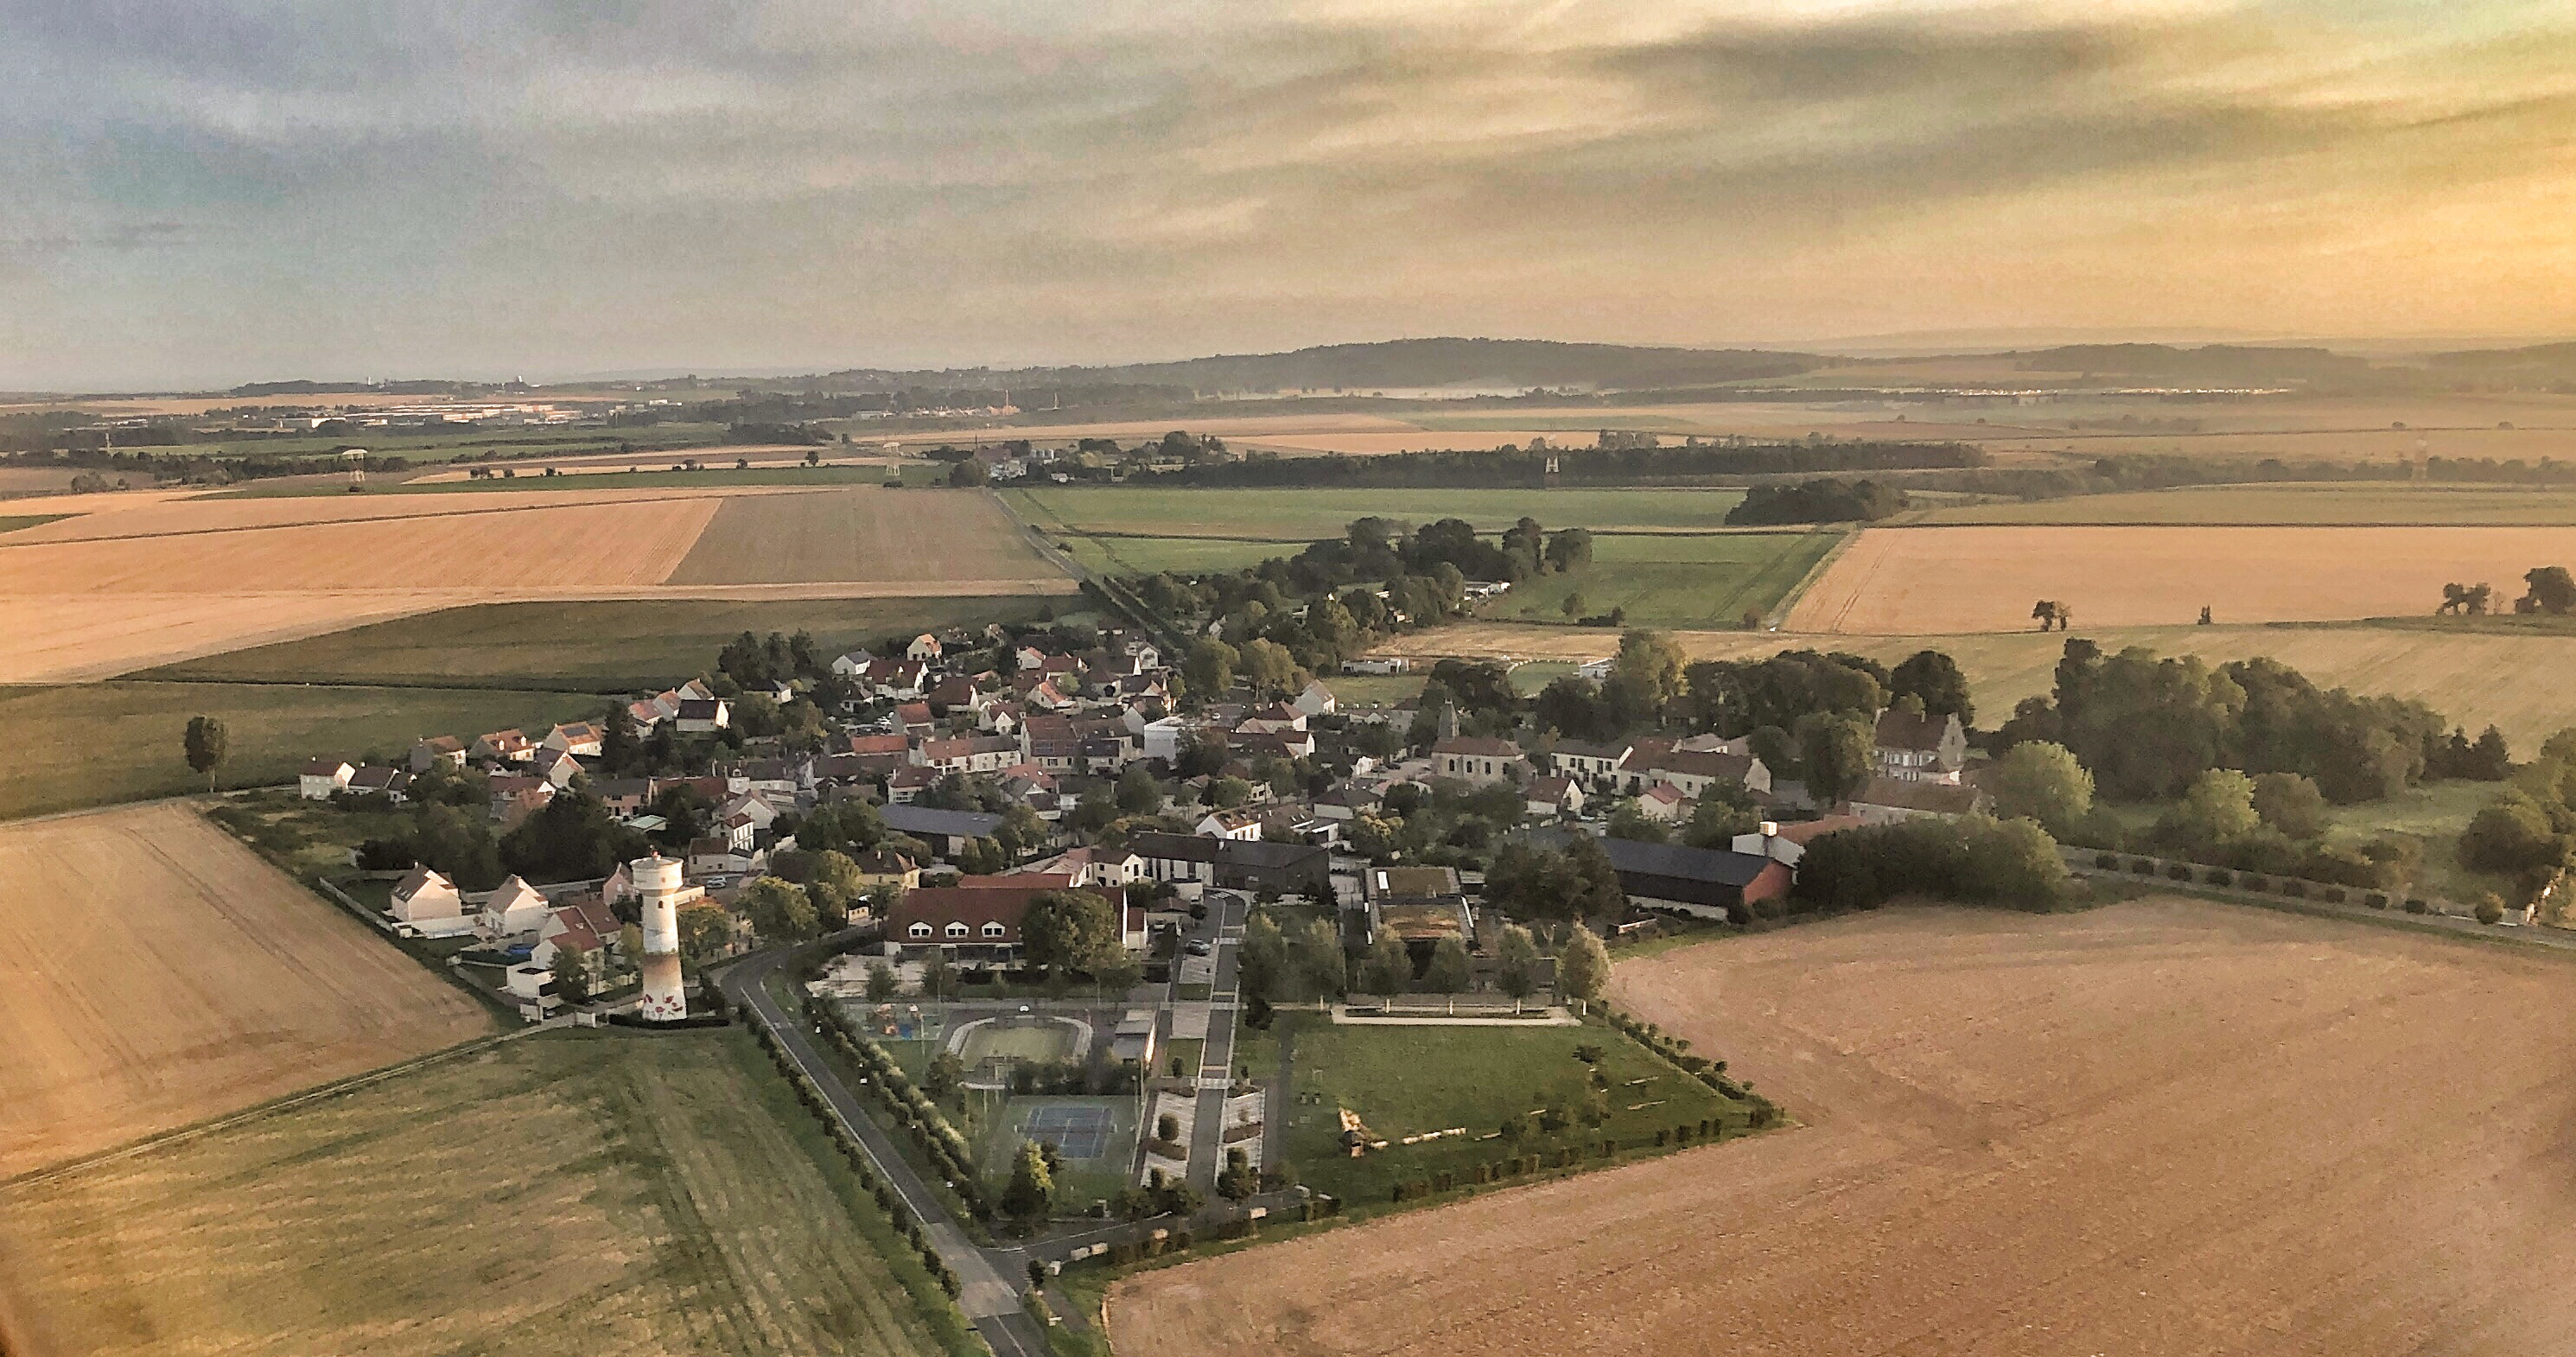 French village in the country side, seen from above